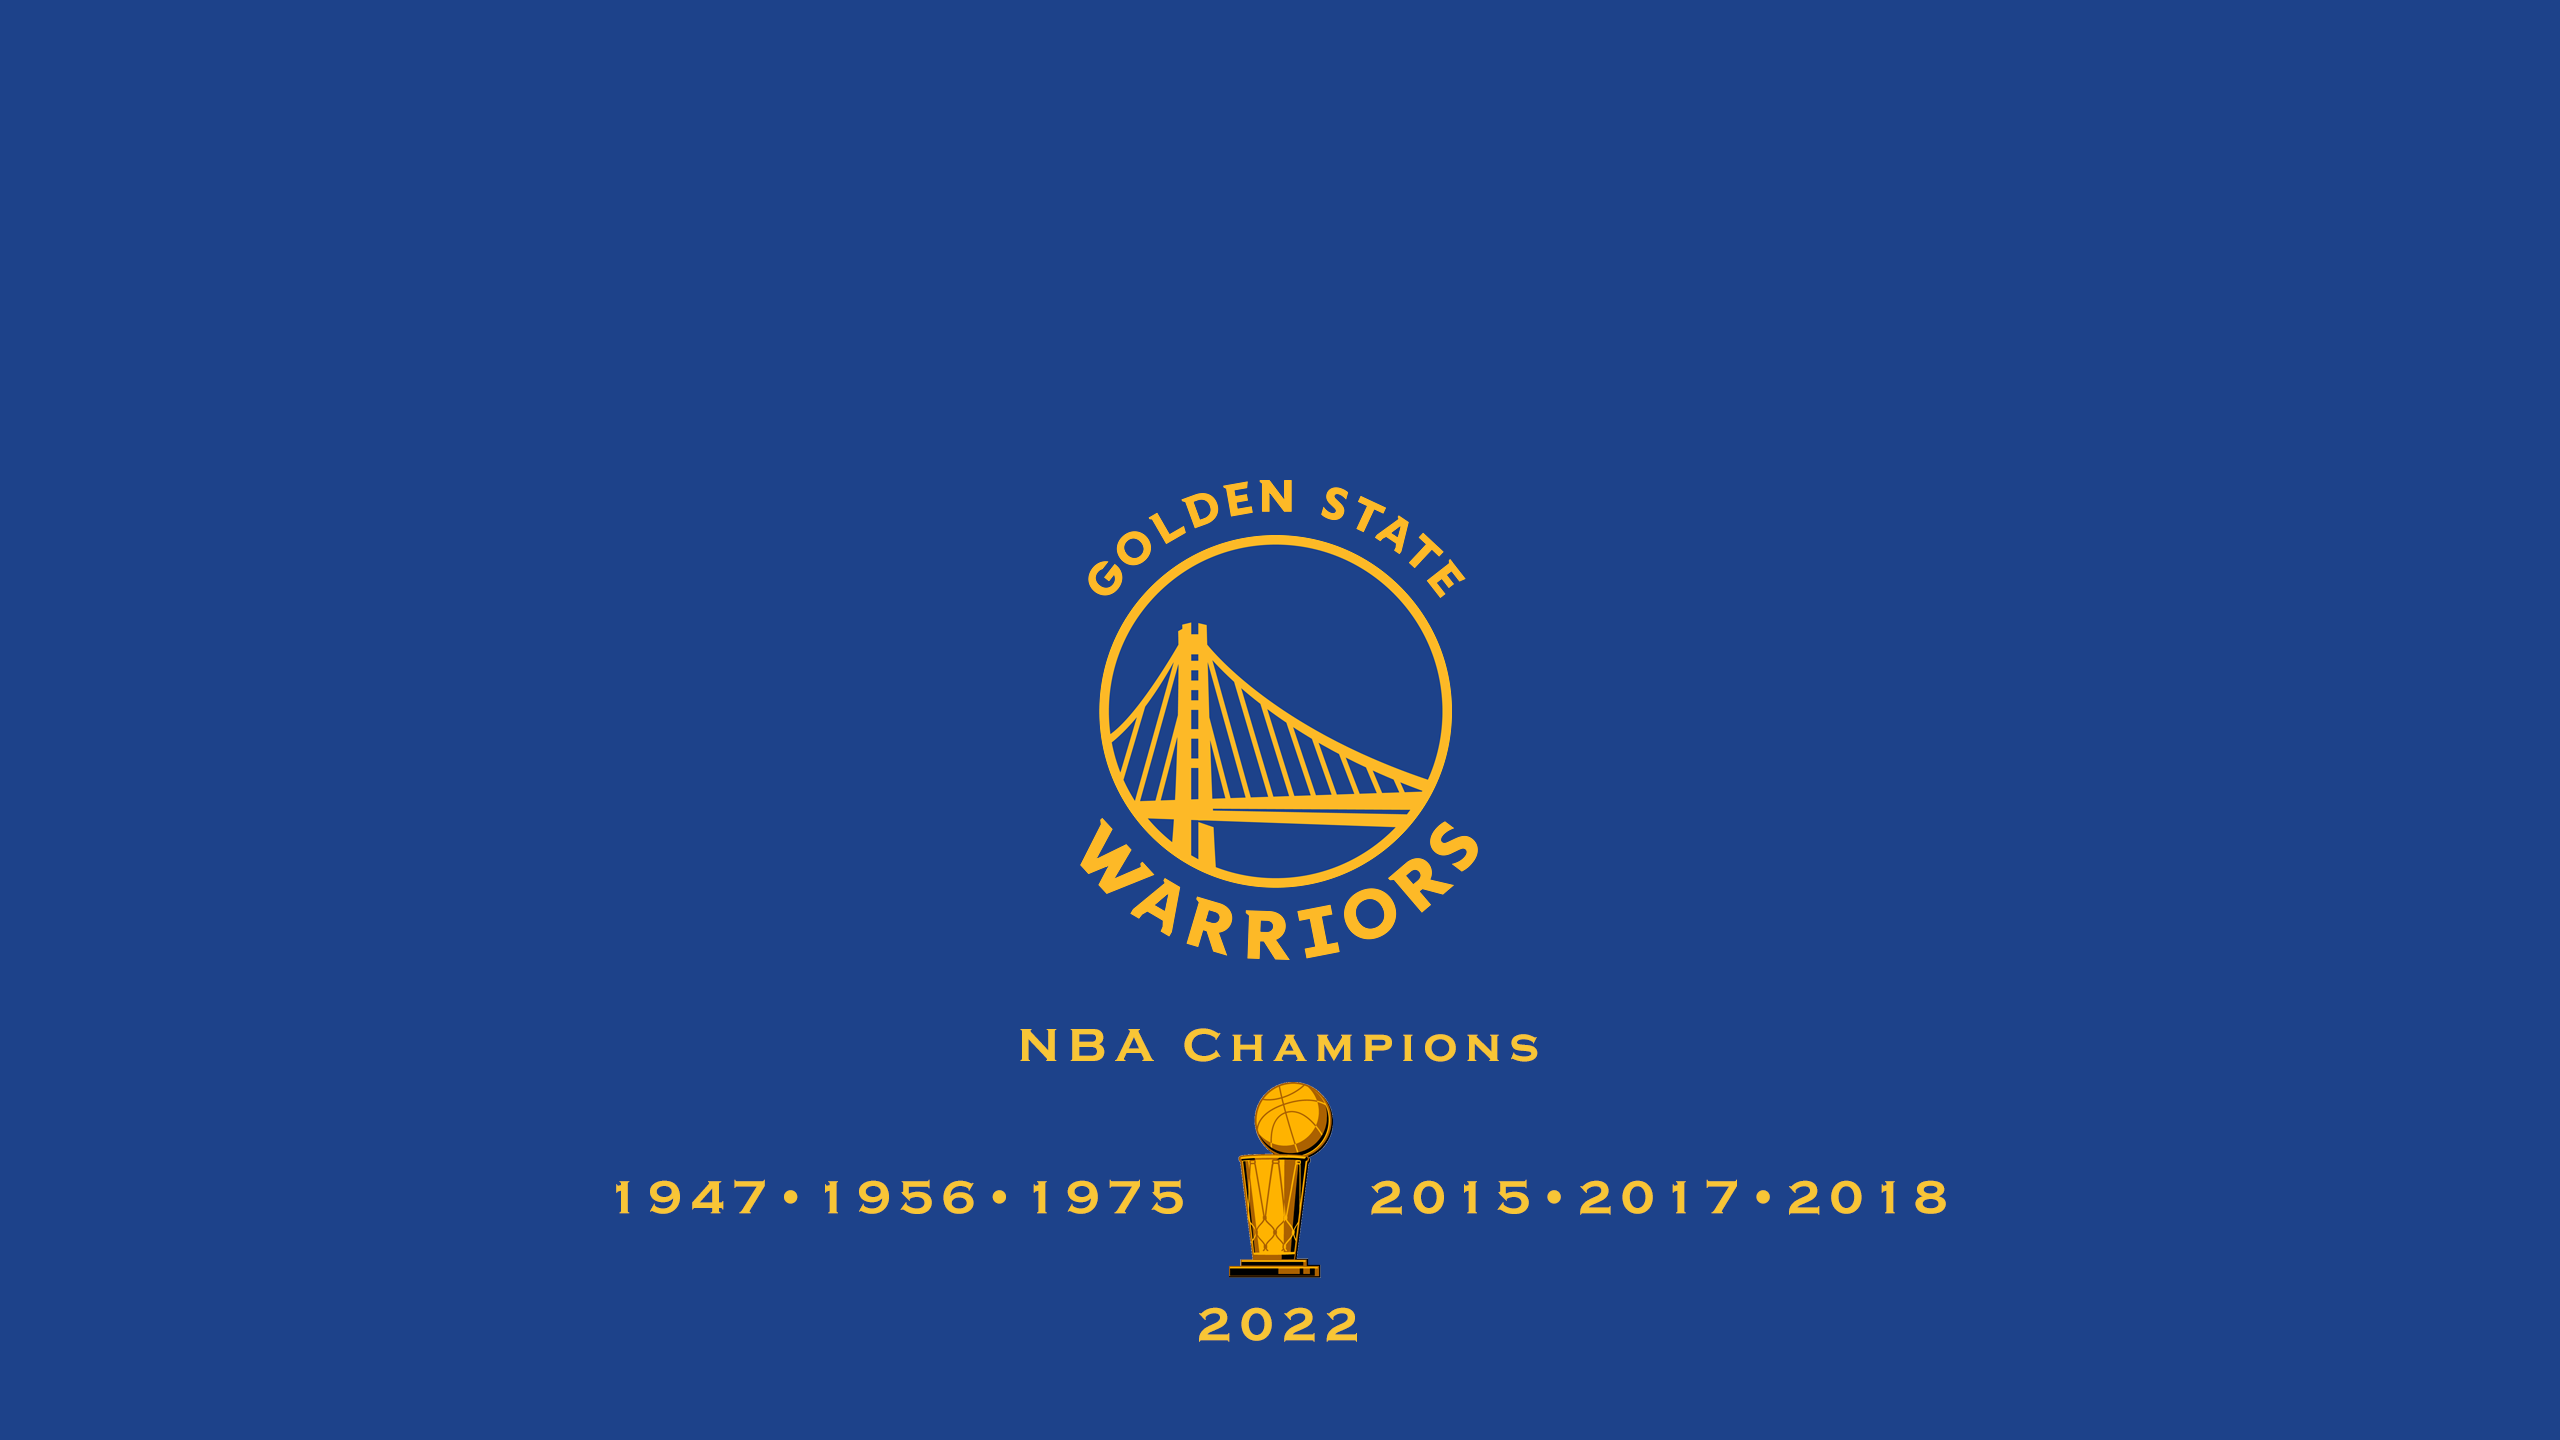 Golden State Warriors - NBA Champs